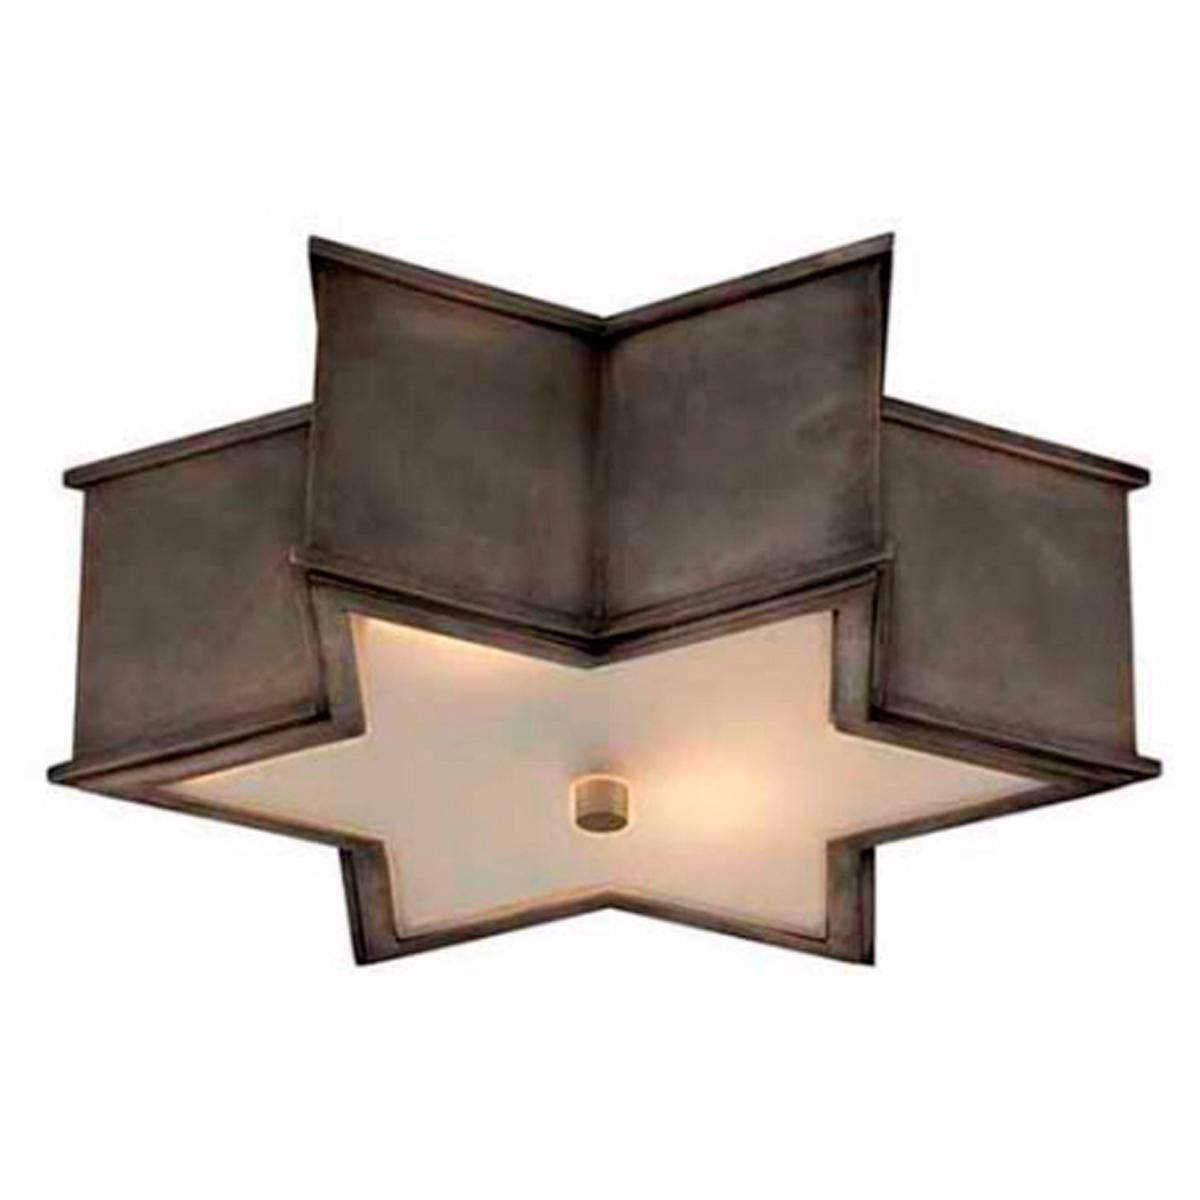 Metal star ceiling light large laundry room pinterest metal star ceiling light large mozeypictures Gallery